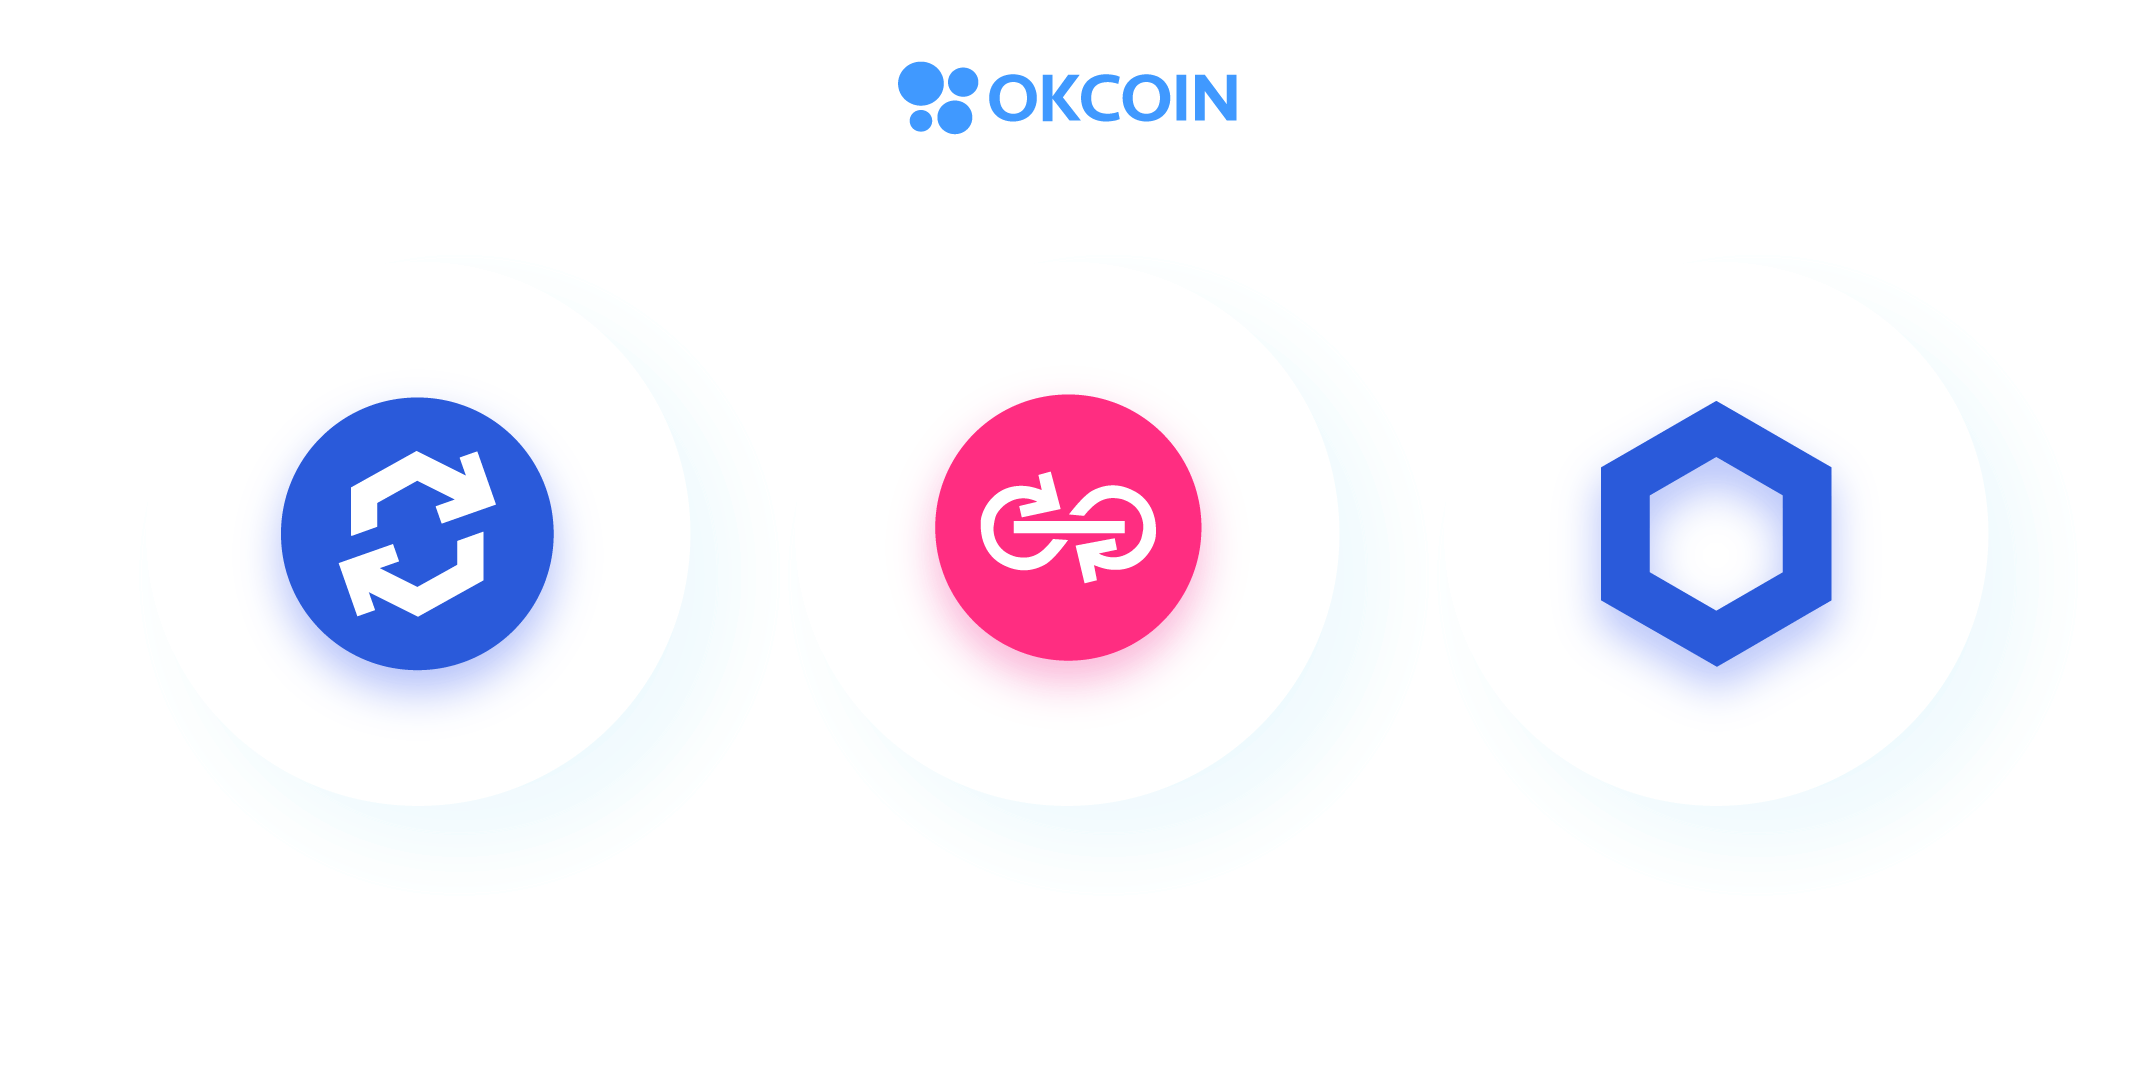 DeFi assets LINK, YFL, and YFII will be coming to OKCoin crypto exchange